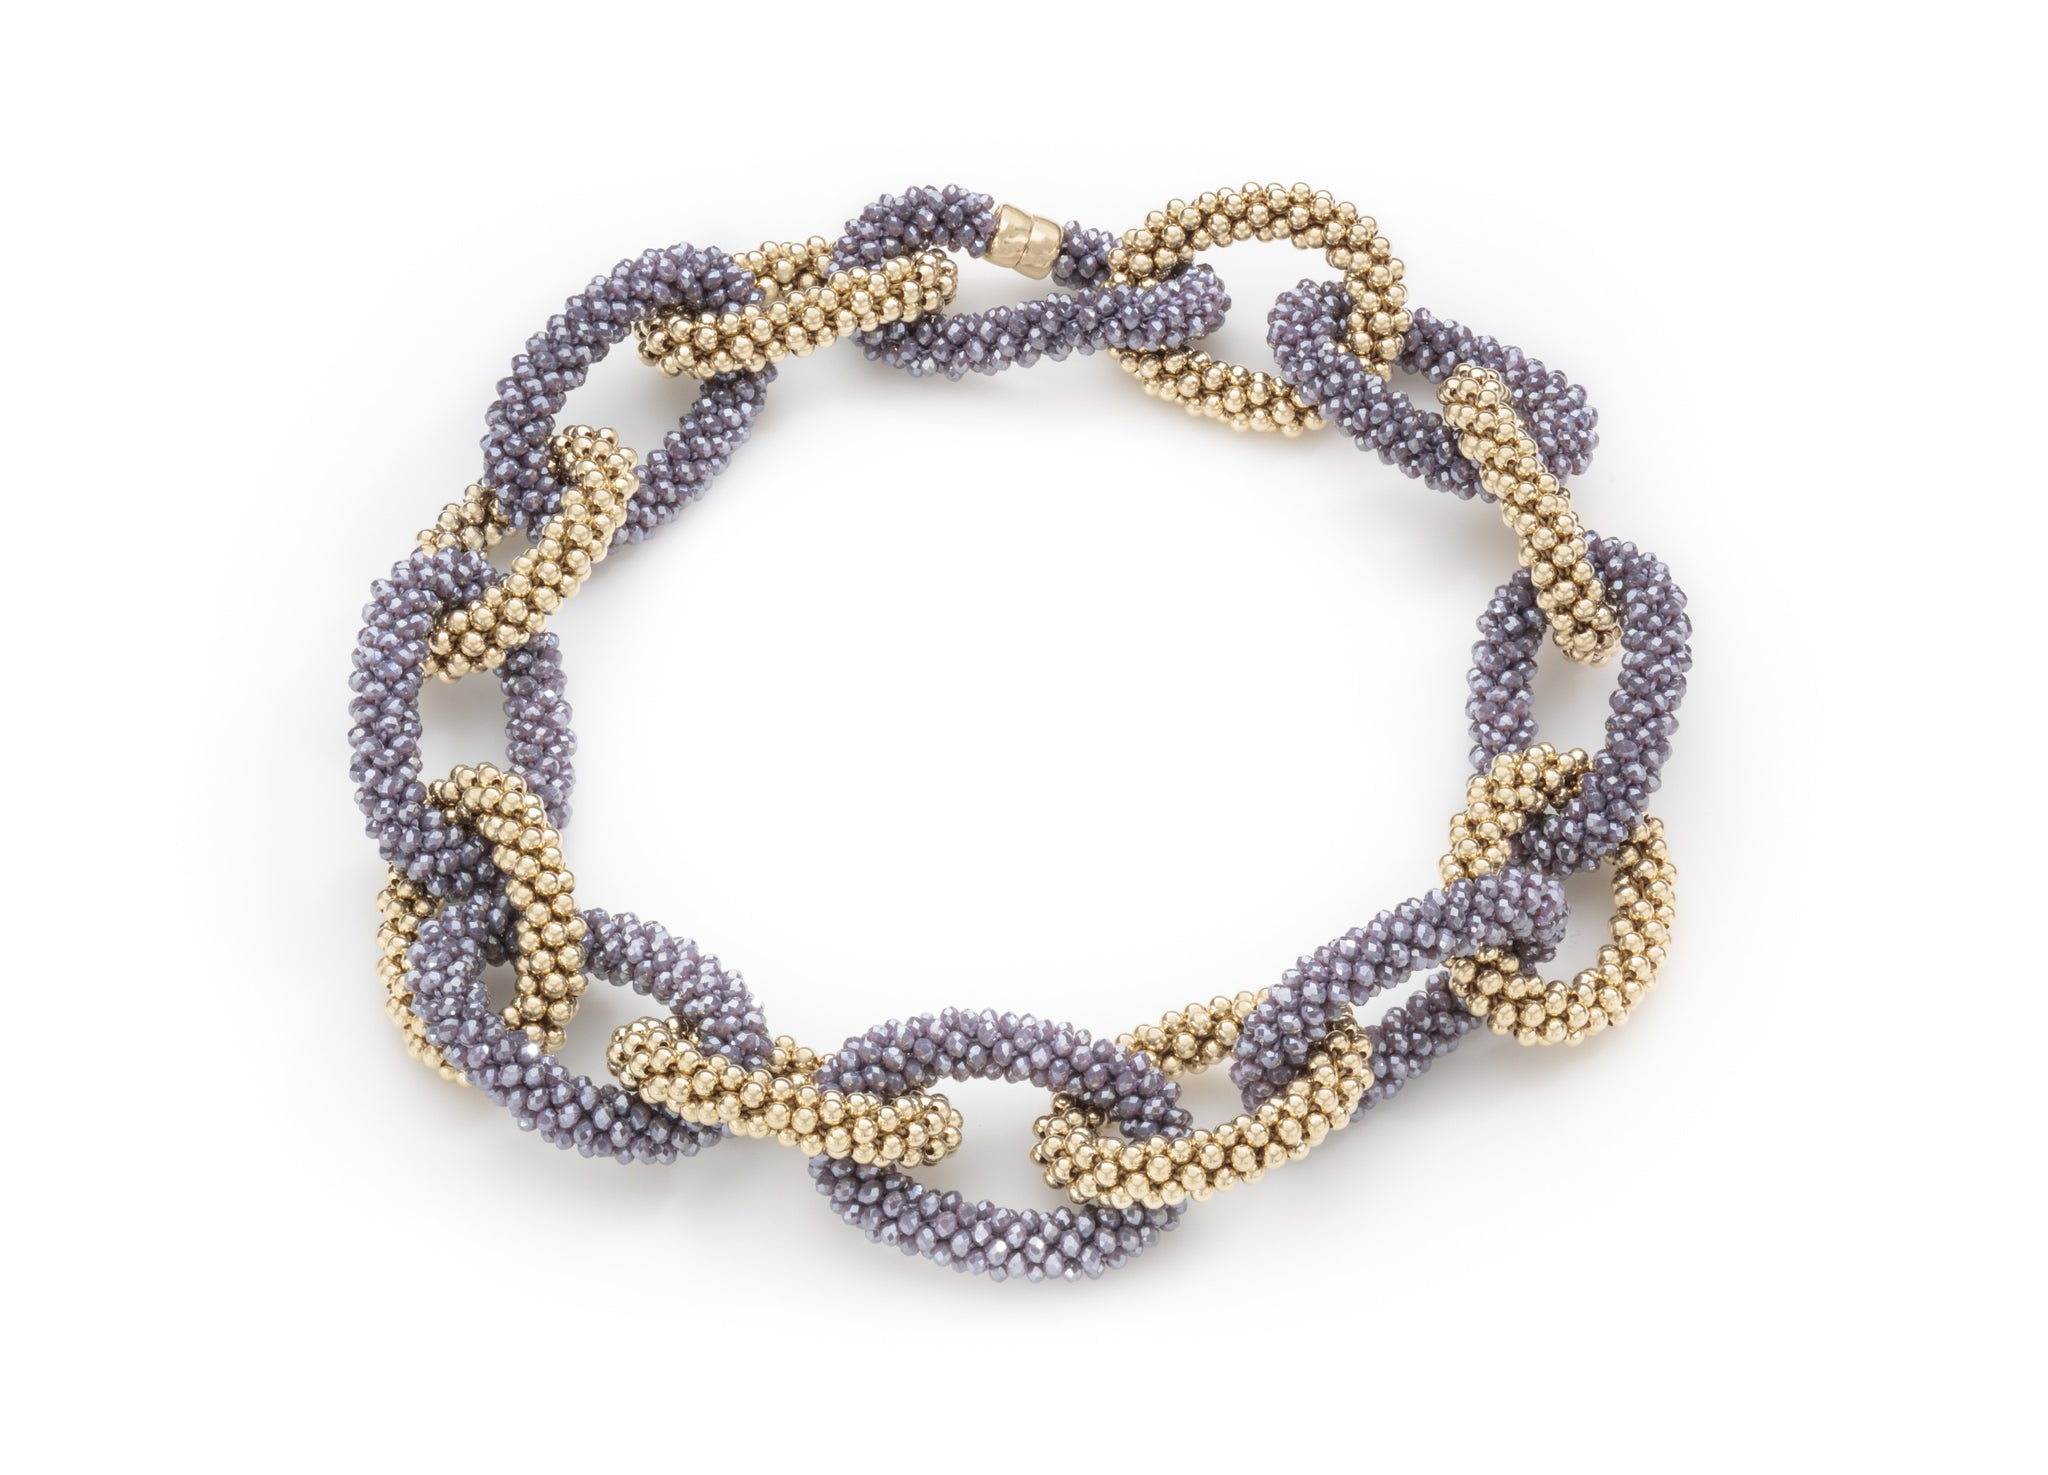 A Lavender Crystal and Gold Linkable Necklace